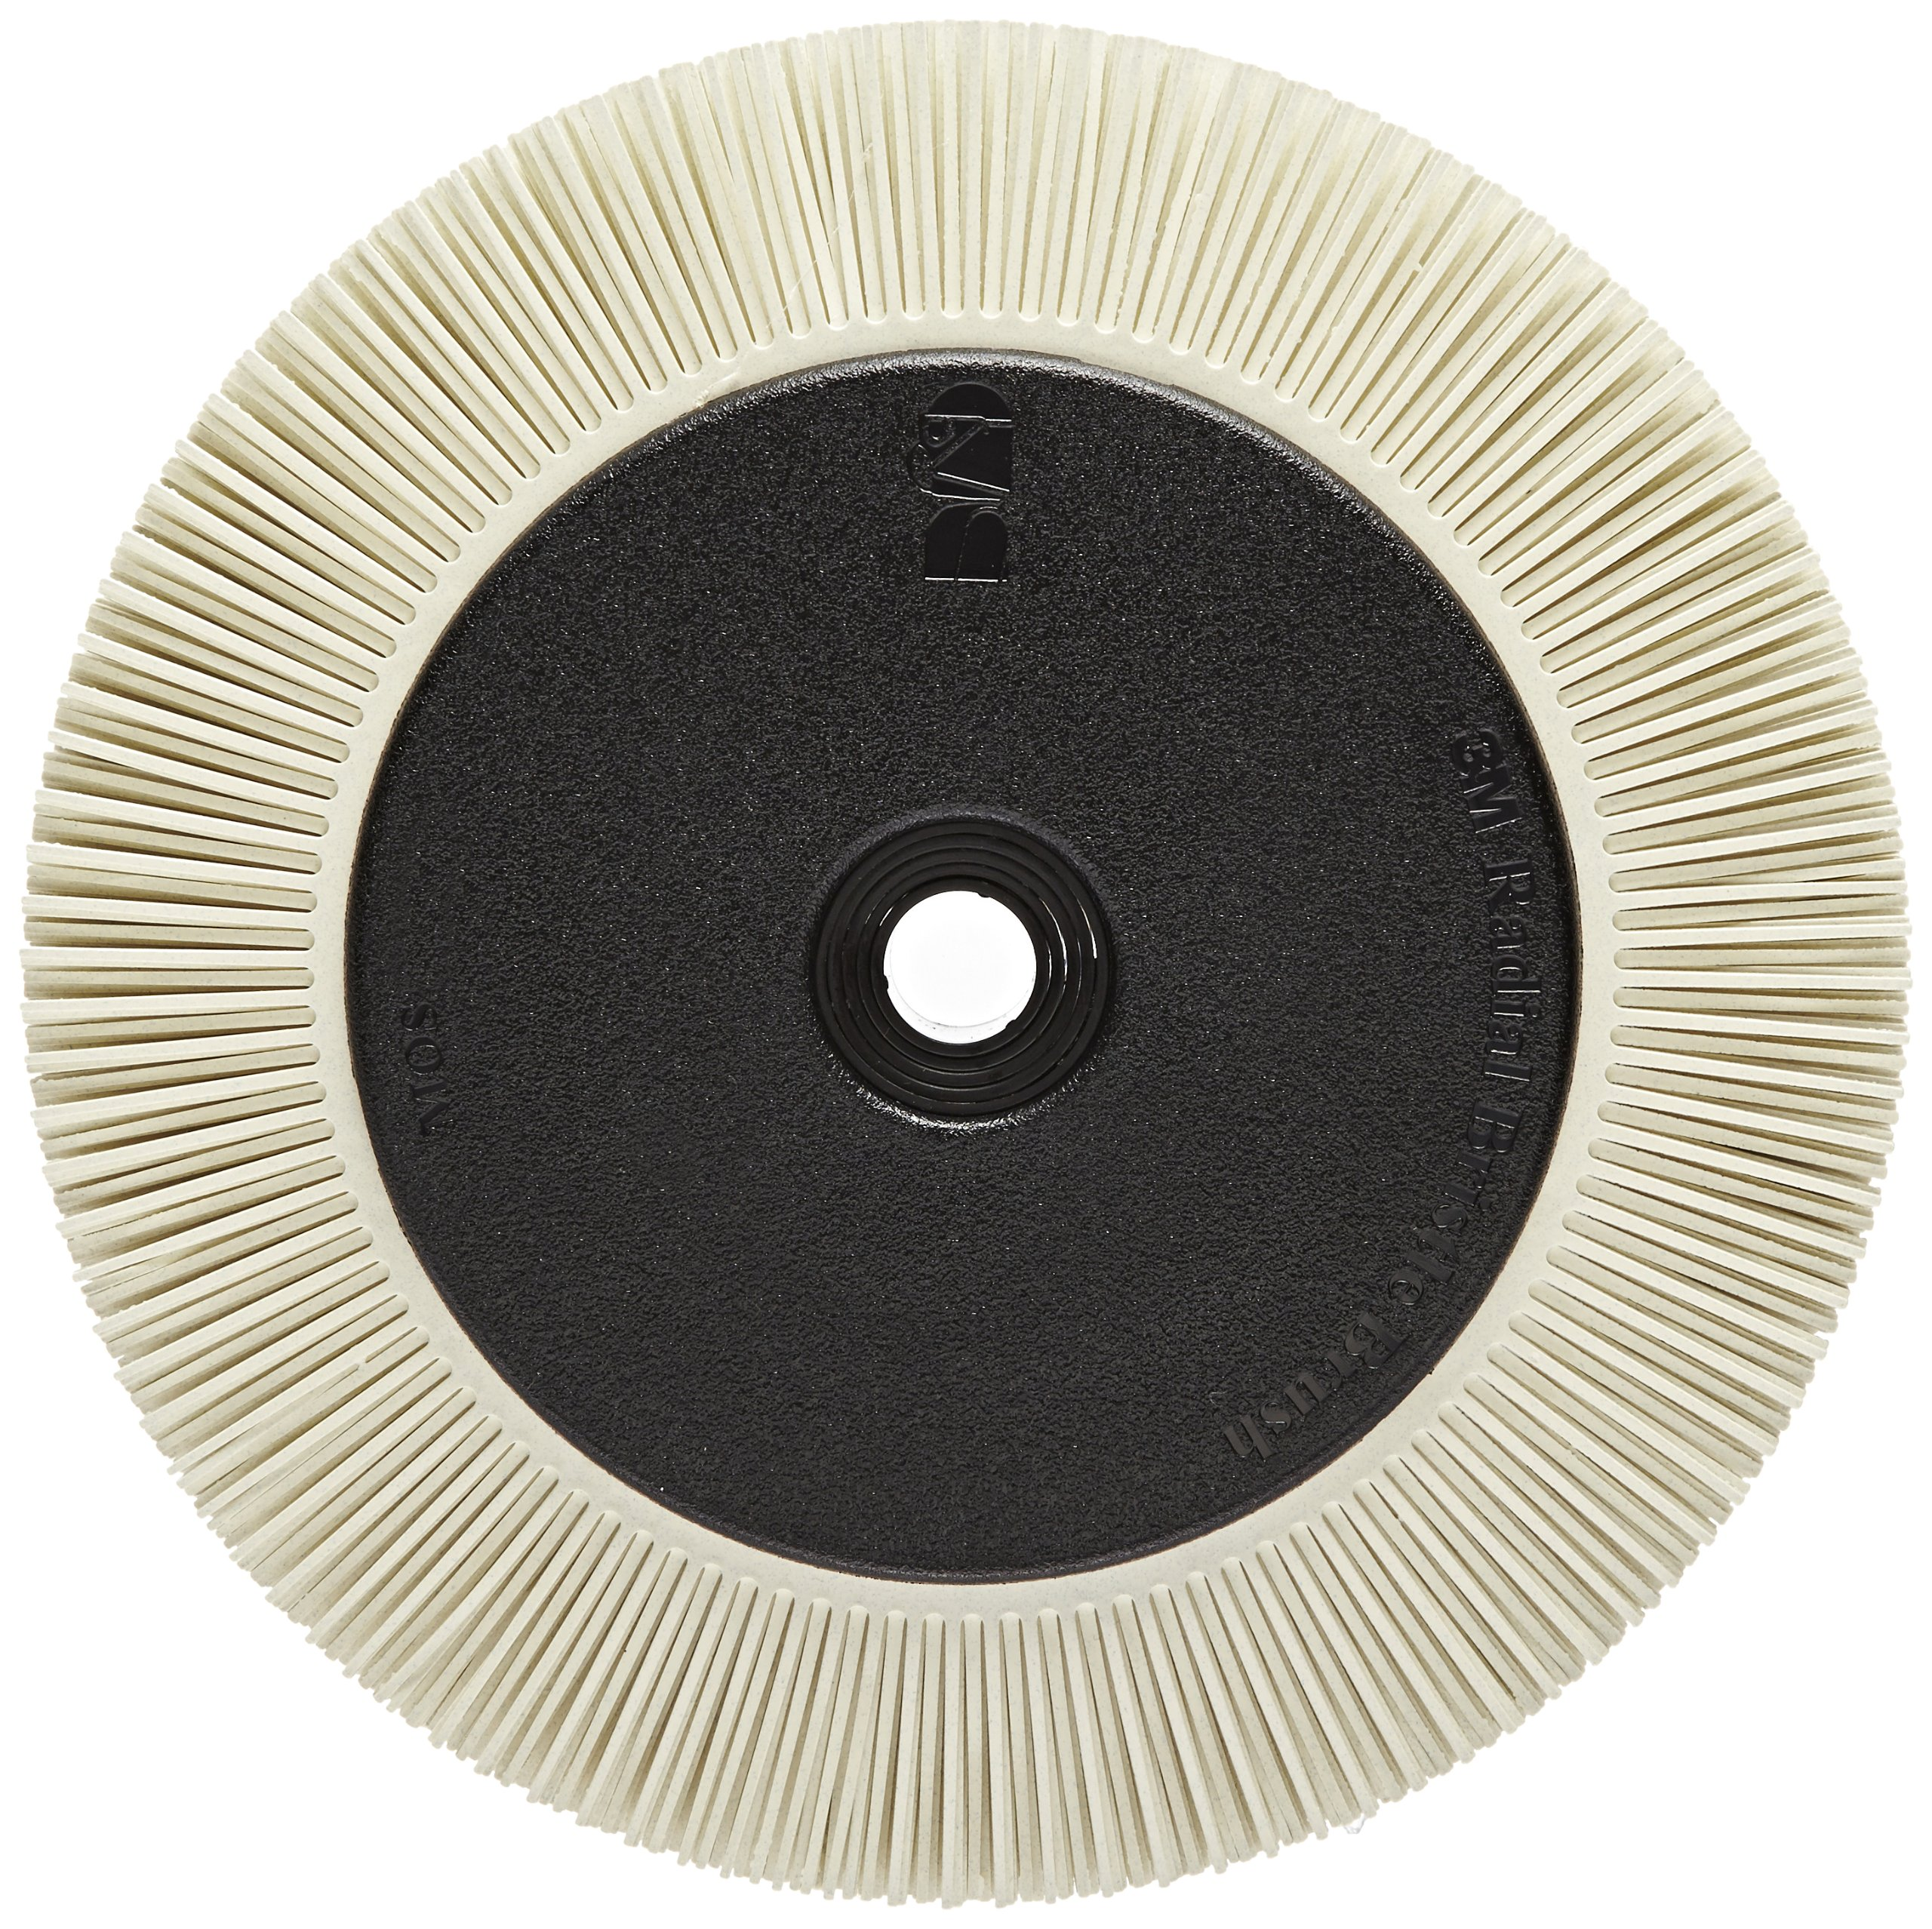 Scotch-Brite(TM) Radial Bristle Brush, Aluminum Oxide, 6000 rpm, 8 Diameter x 1 Width, 120 Grit, White (Pack of 1)